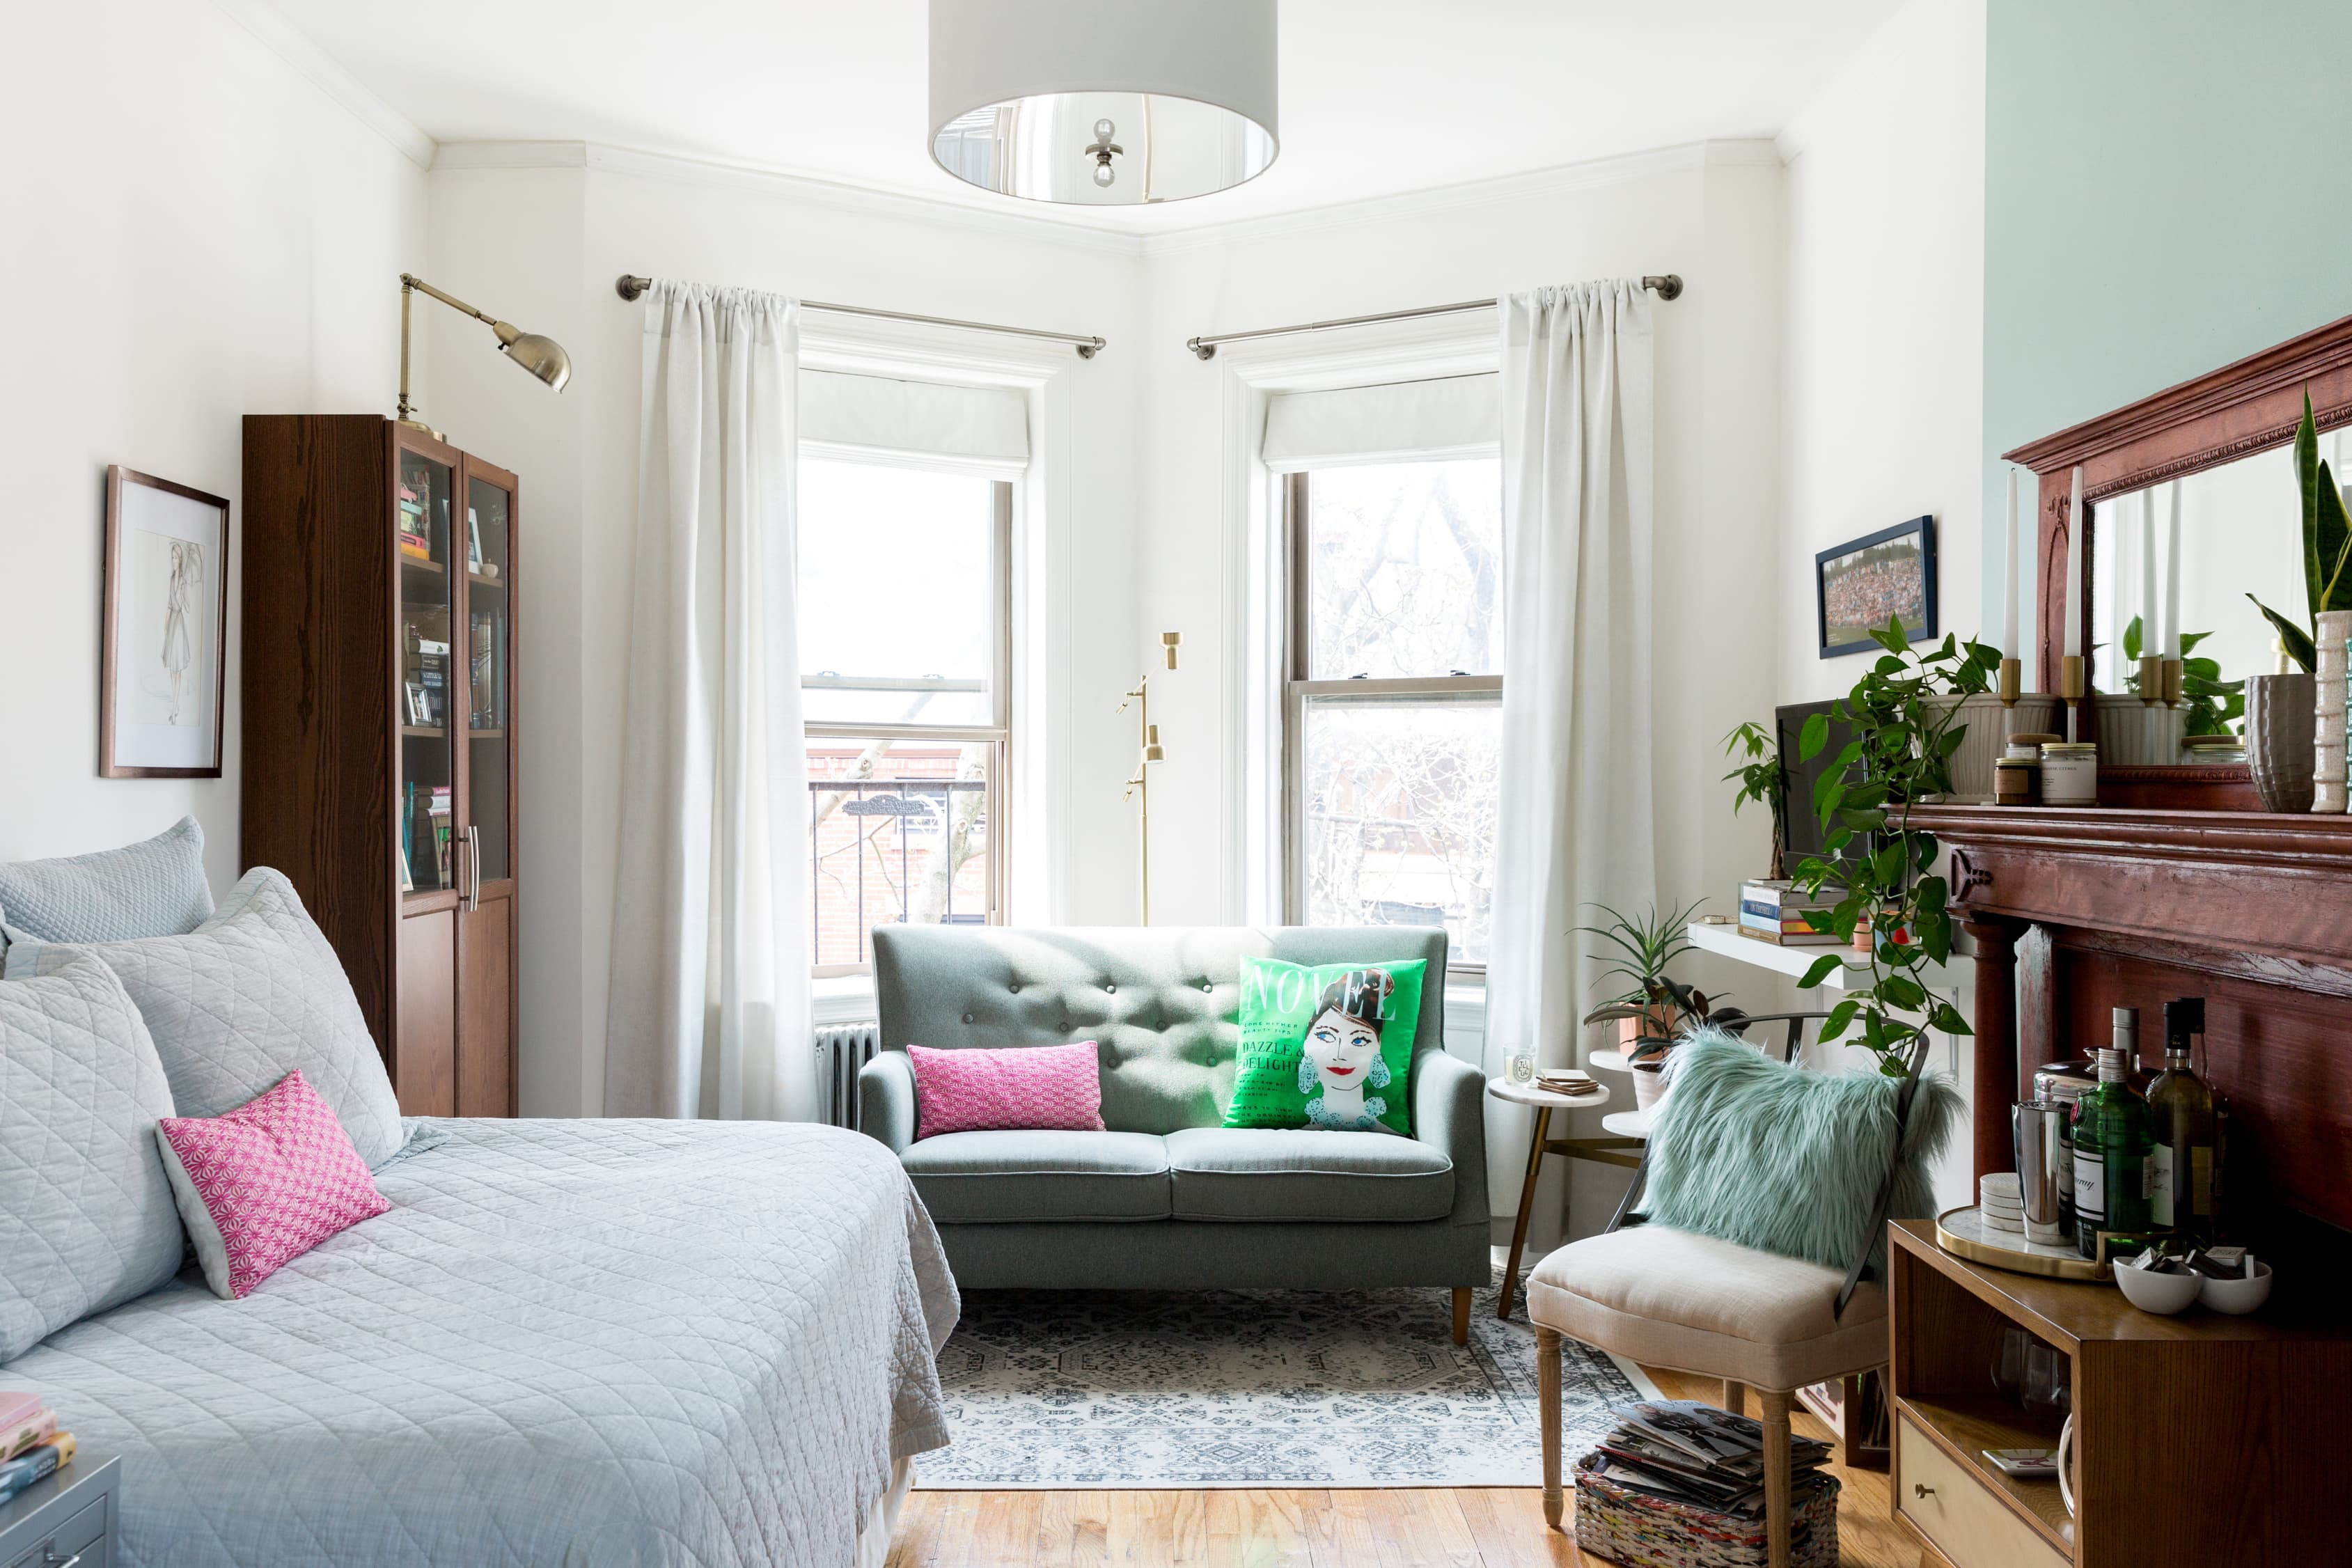 A Super Small 375-Square-Foot Studio Is Masterfully Arranged